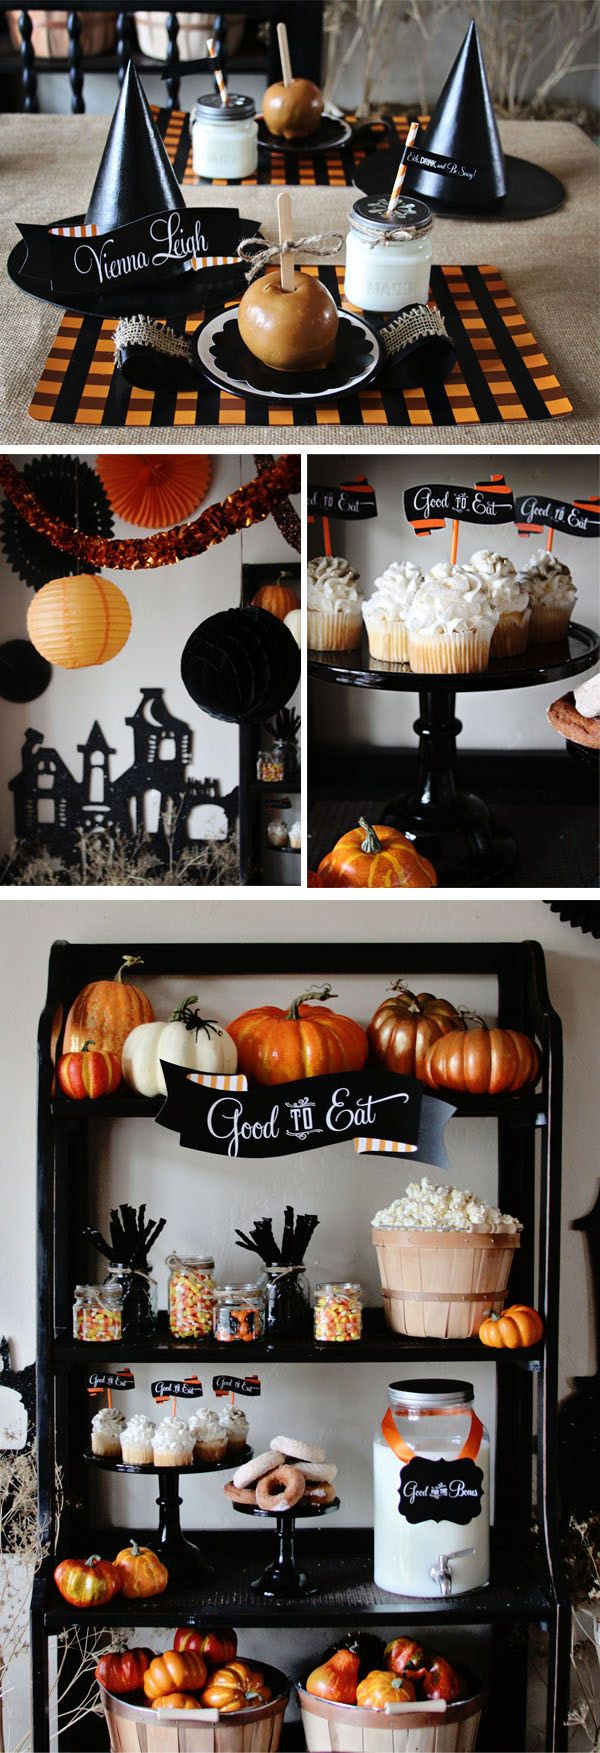 INSPIRATION - Party-Themed Décor Ideas For Halloween (Source : http://www.homedit.com/party-themed-decor-ideas-halloween/) #halloween #tablescape #decoration: